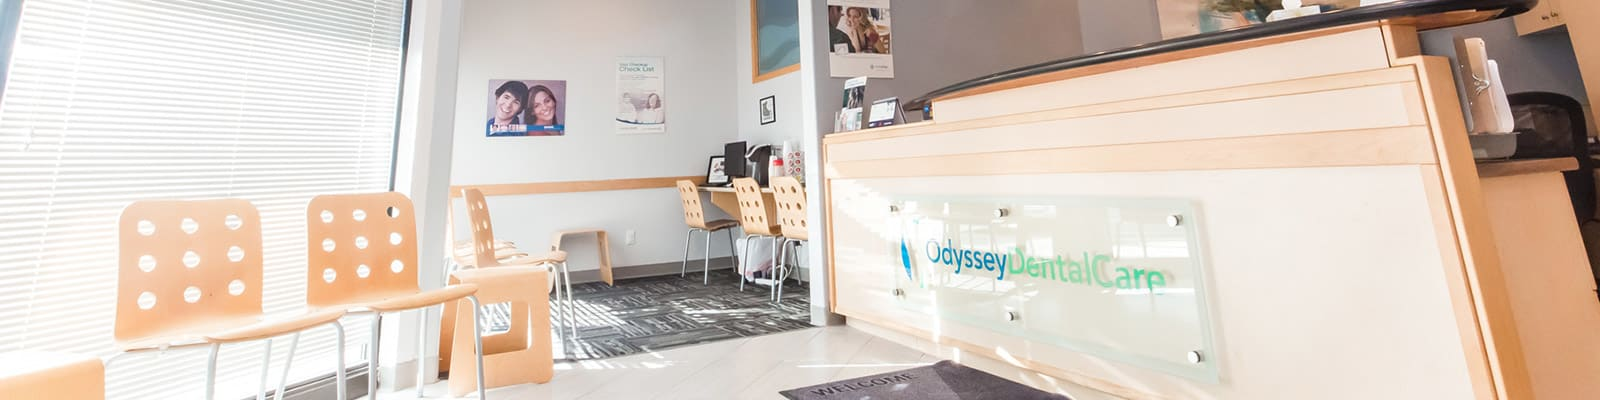 First Visit Information, Odyssey Dental Care